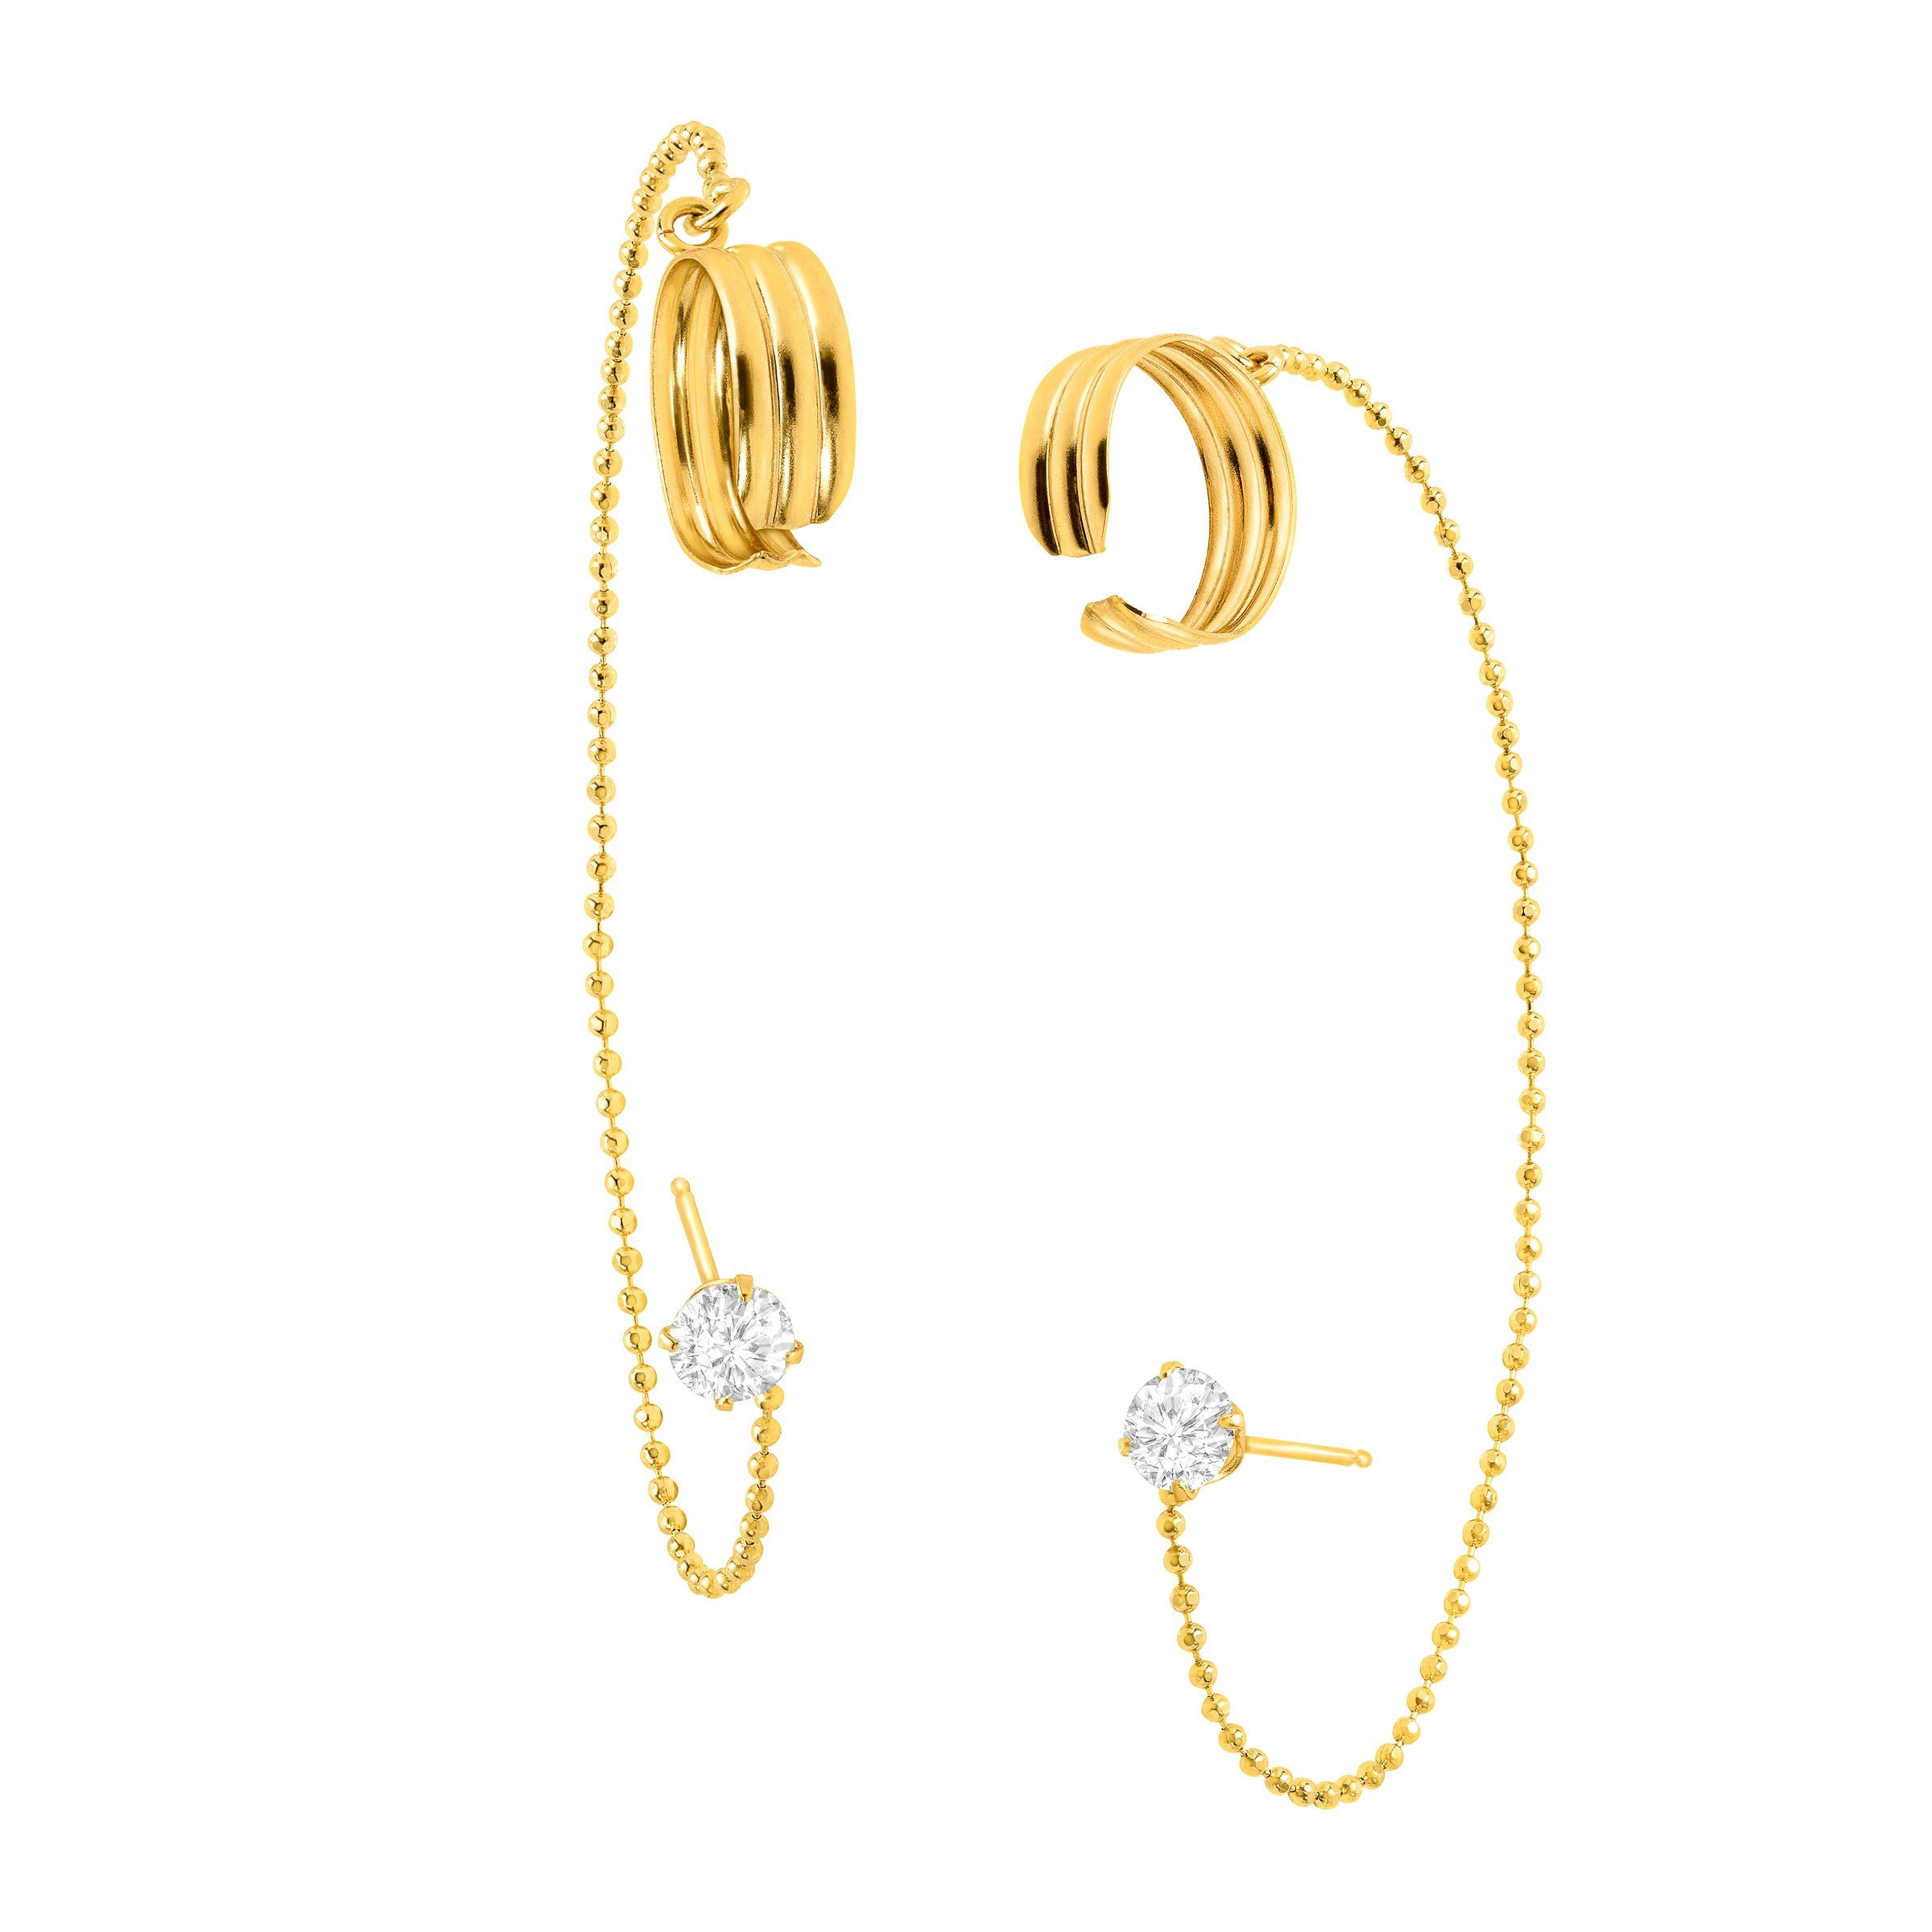 Eternity Gold Cubic Zirconia Cuff Stud Earrings in 10K Gold